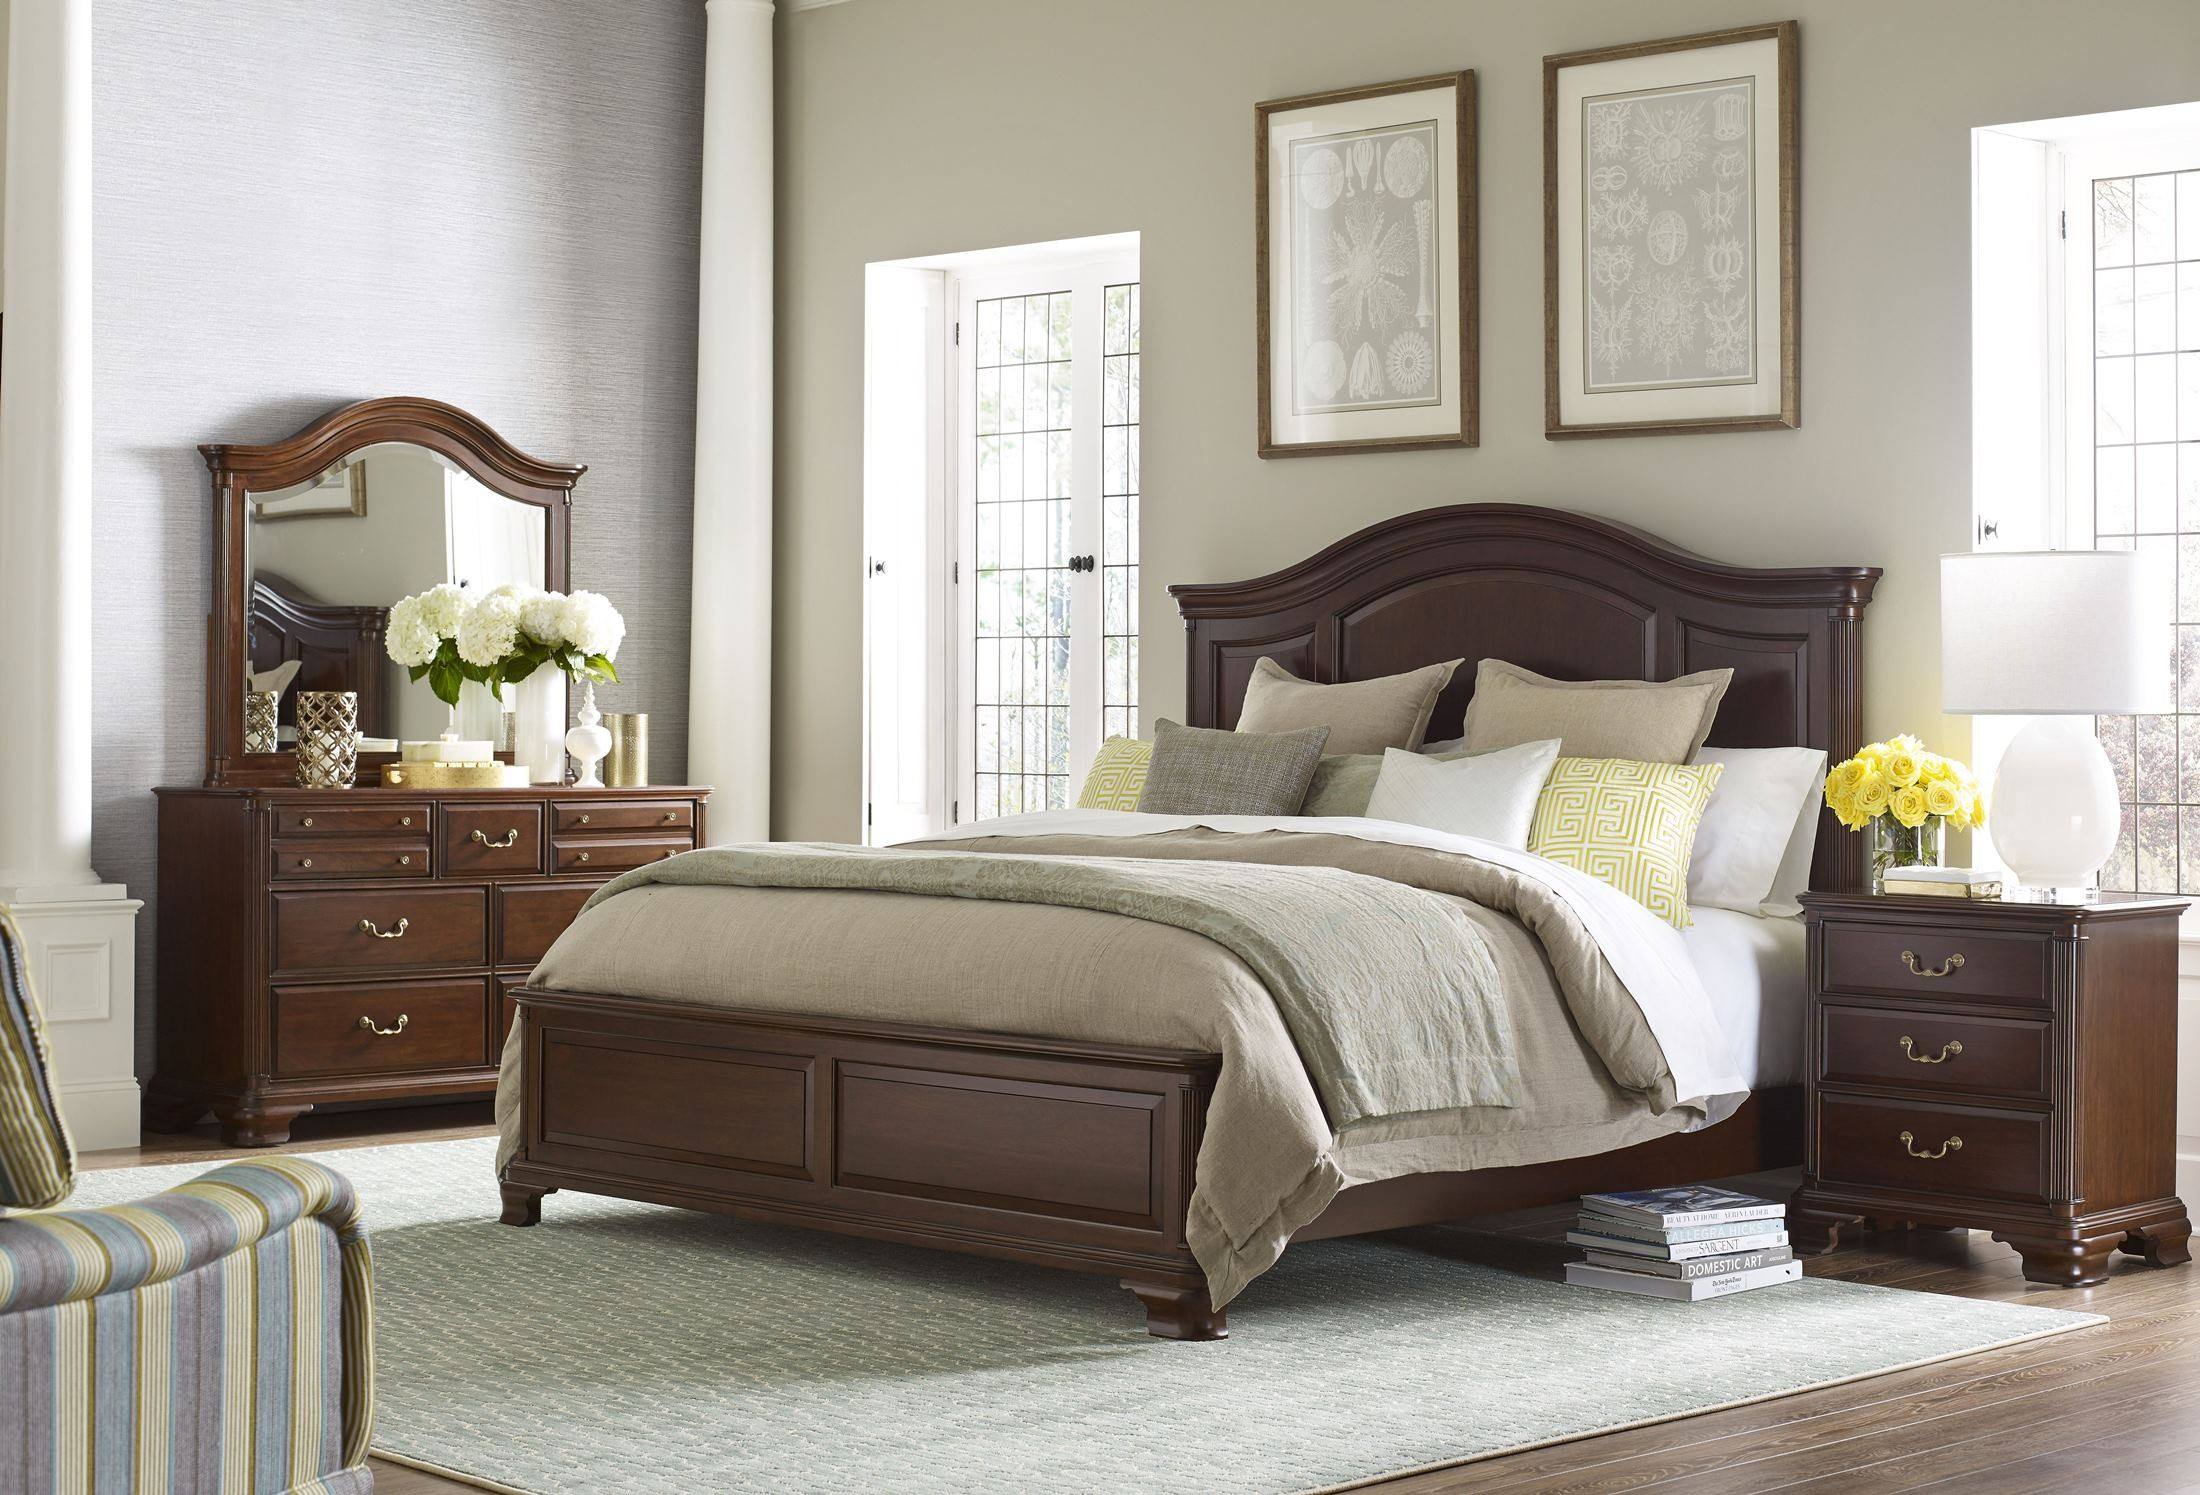 Hadleigh Panel Bedroom Set From Kincaid Furniture Coleman Furniture - Kincaid tuscano bedroom furniture